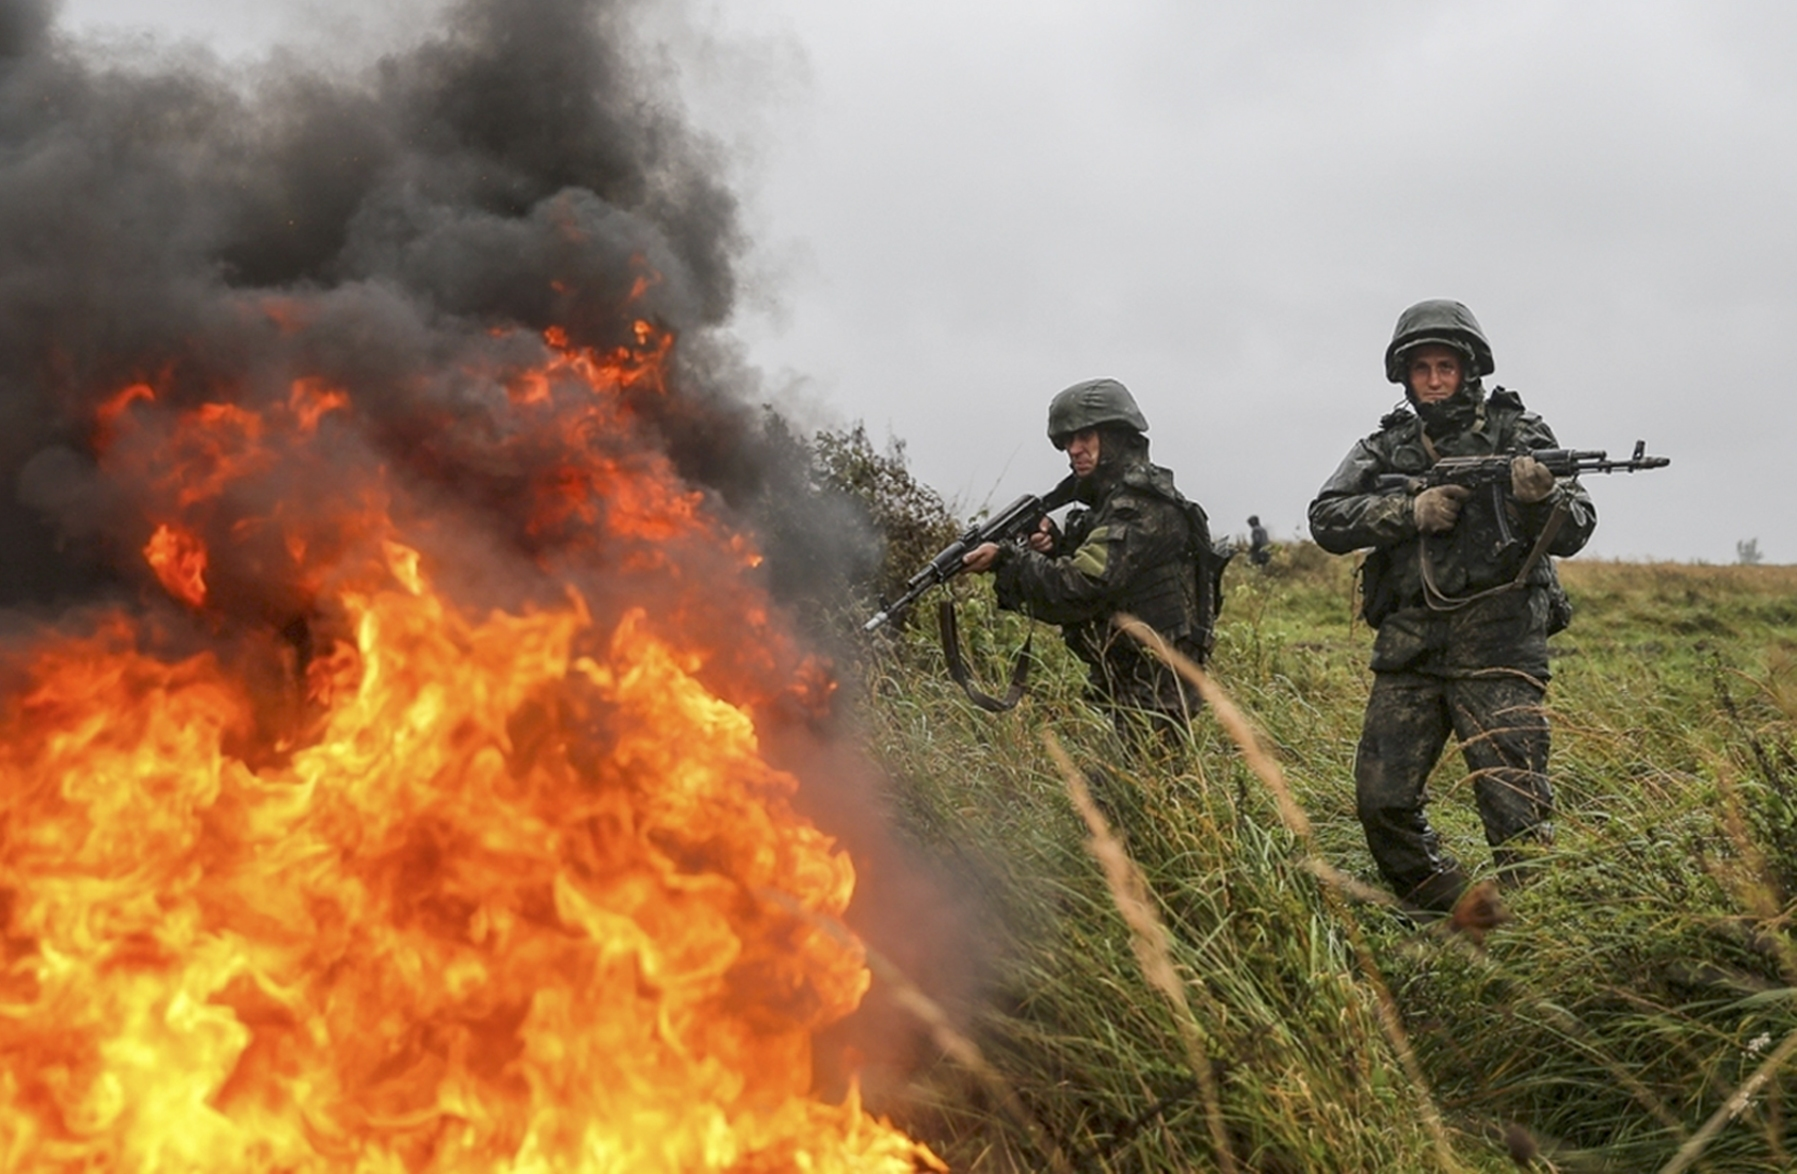 Russian troops participate in a military exercise at a training ground near Kaliningrad, Russia, on Sept. 18, 2017. The Zapad 2017 maneuvers have caused concern among some NATO members neighboring Russia, who have criticized a lack of transparency about the exercises and questioned Moscow's real intentions. (Russian Defence Ministry Press Service/AP)